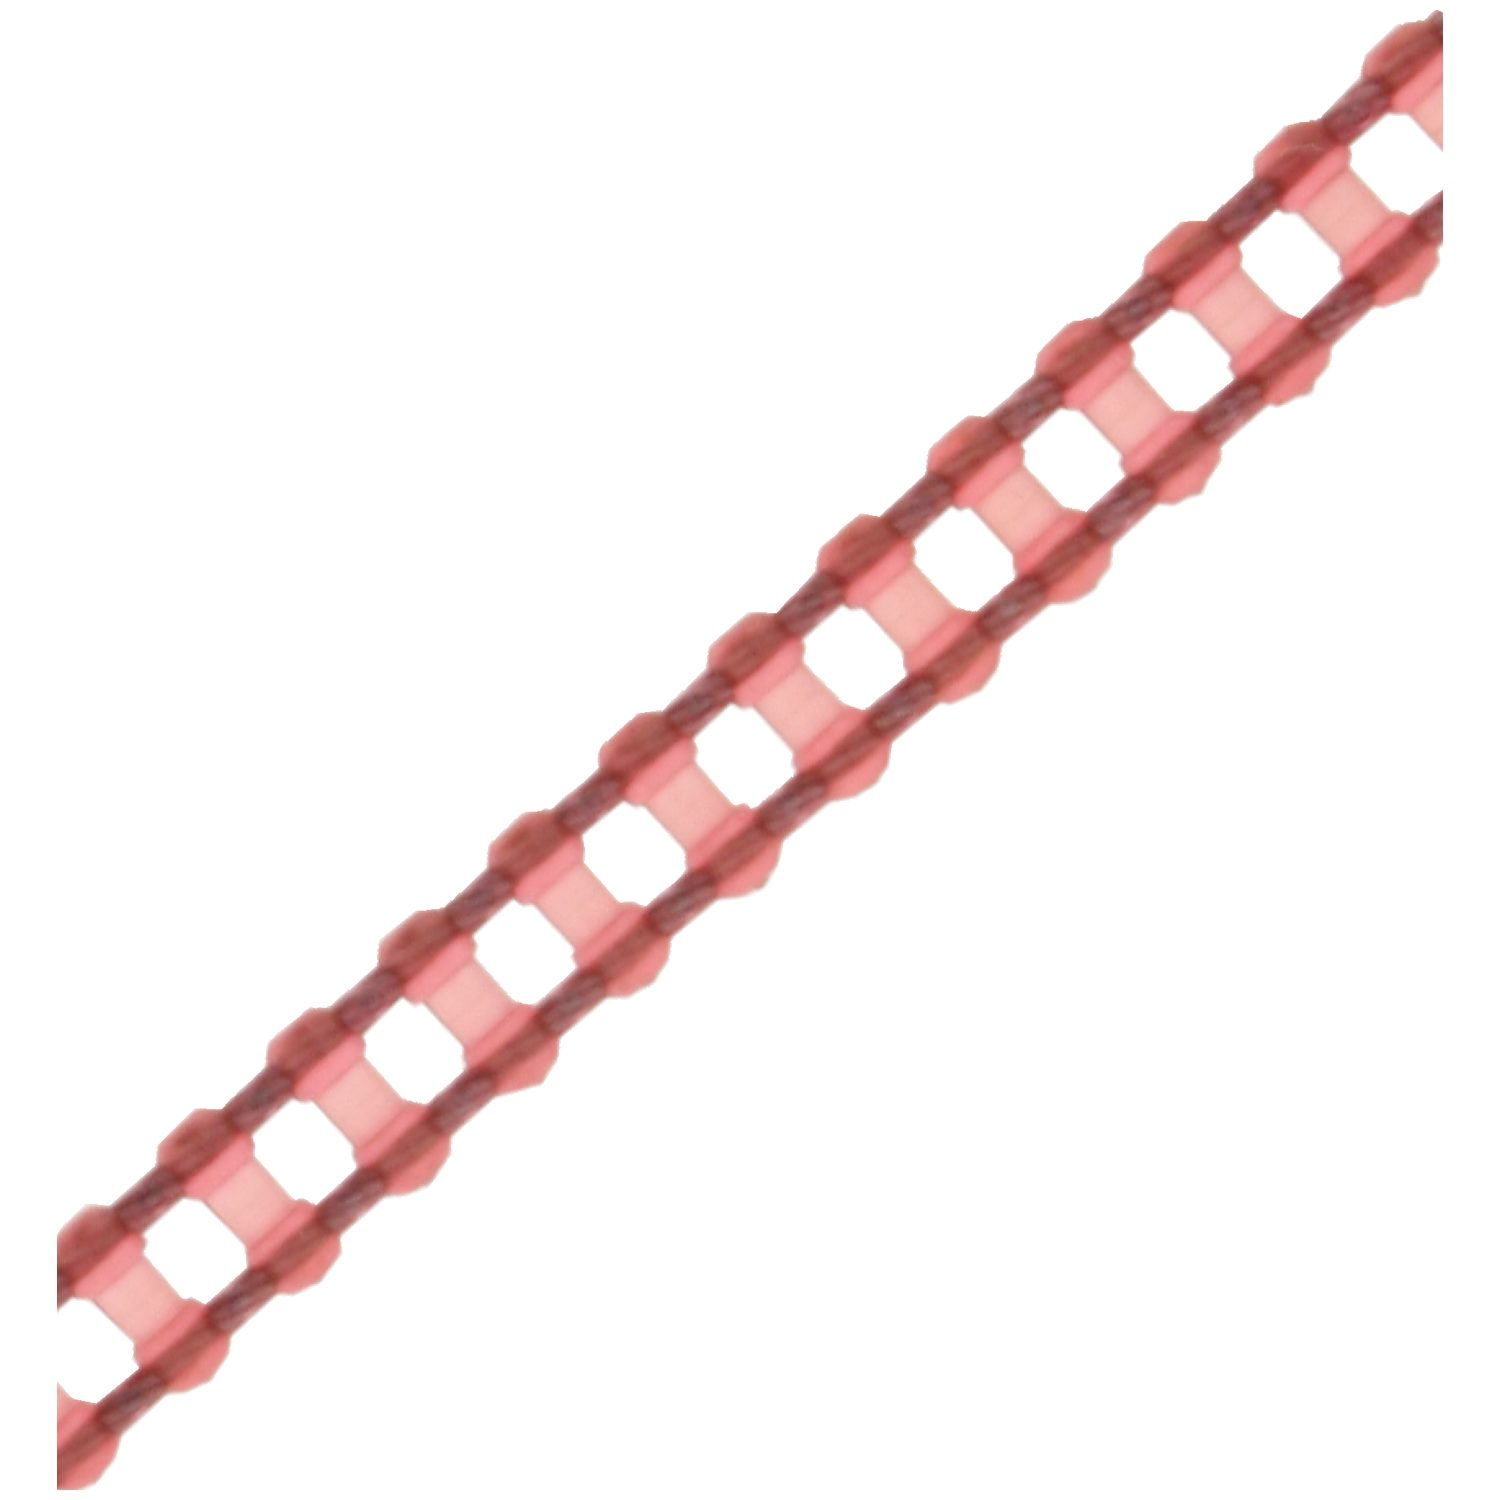 R1035 - Cable Chains